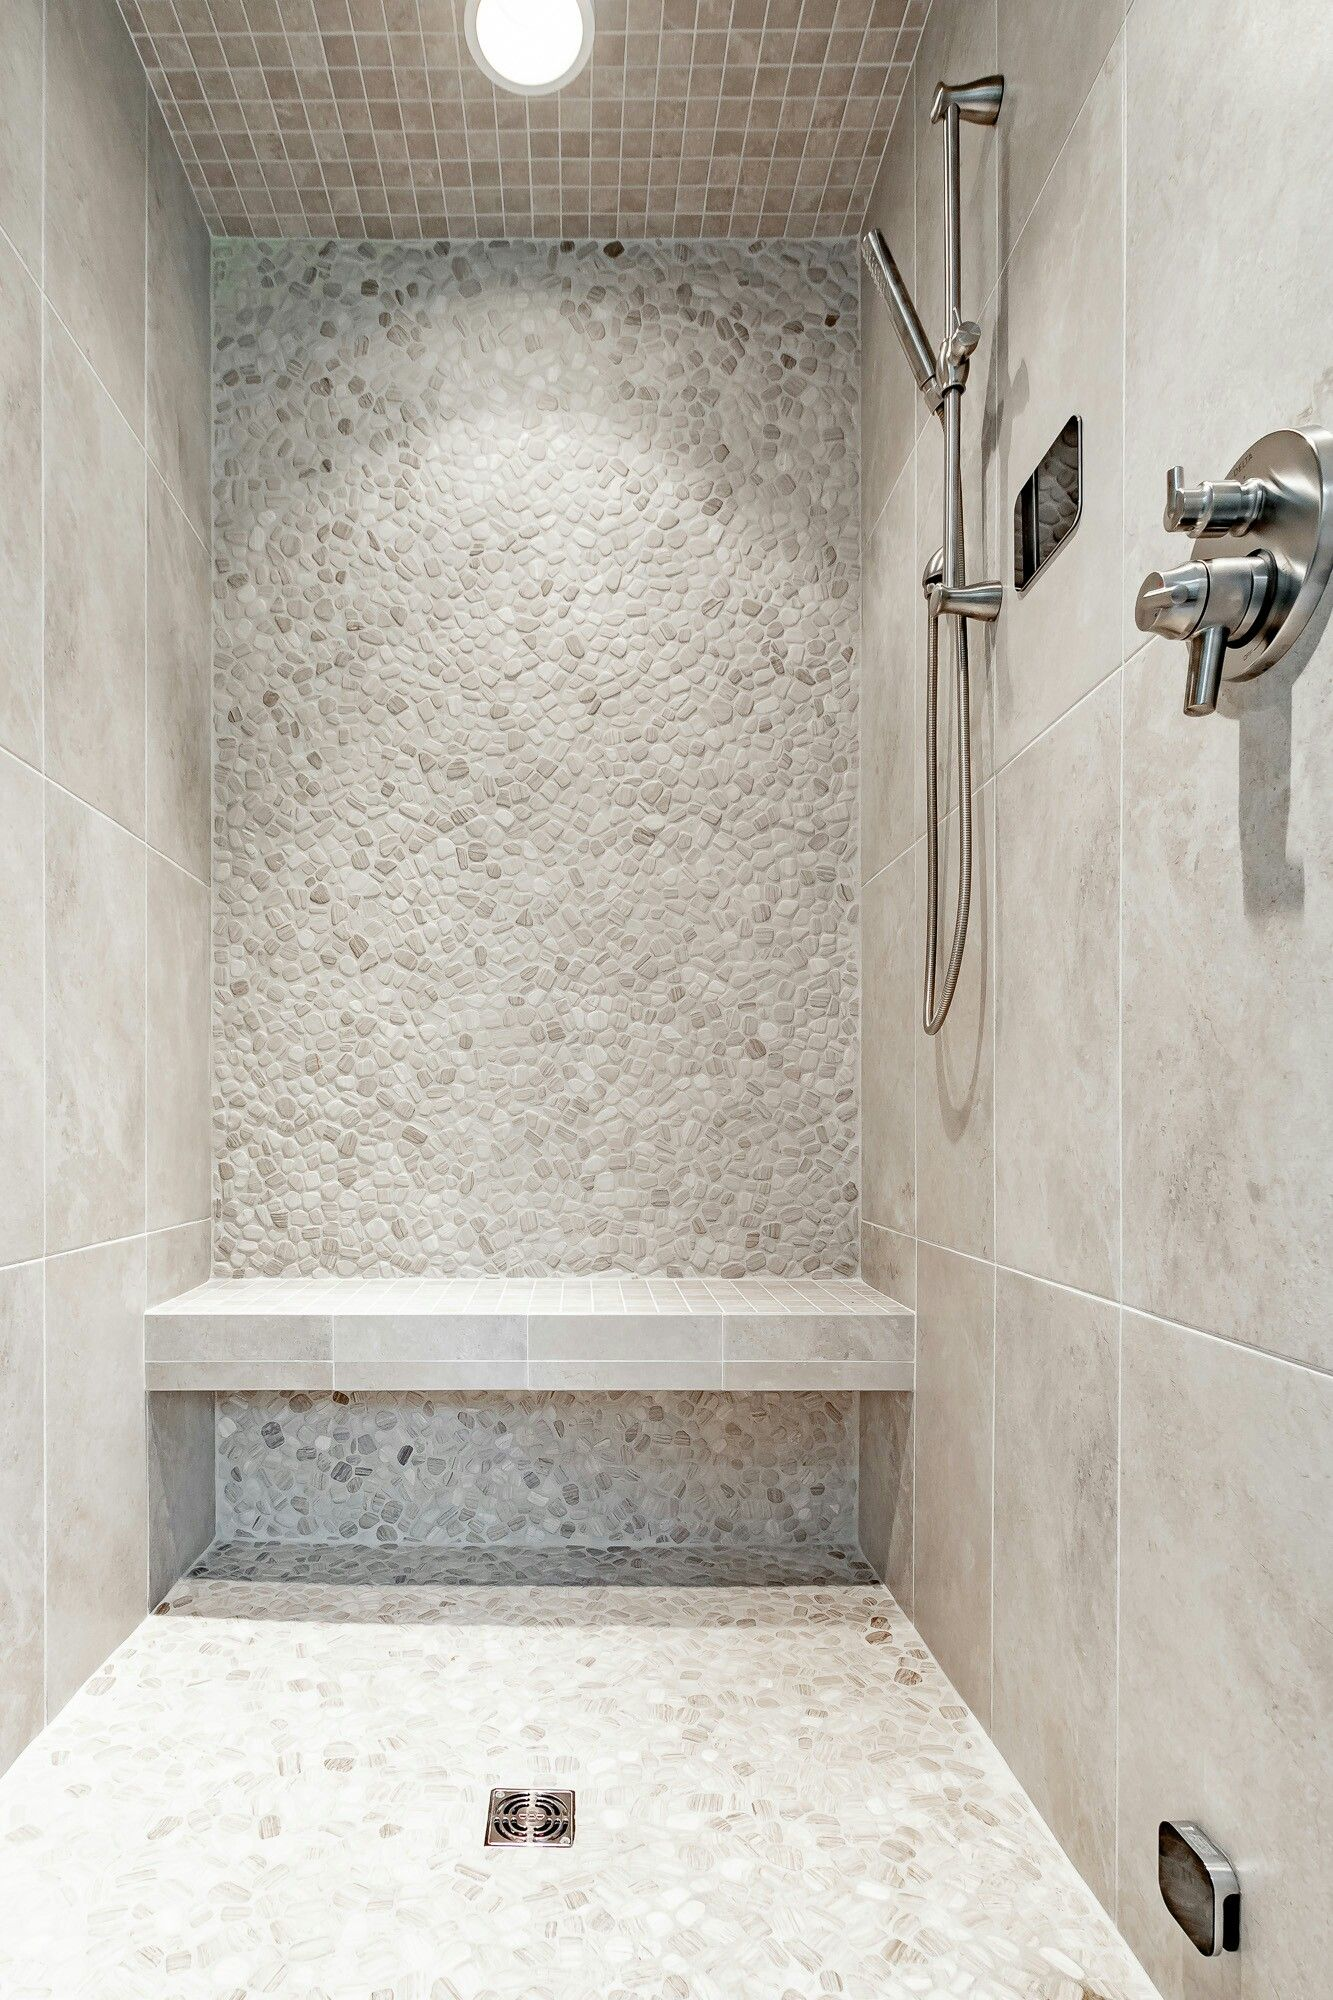 Custom Tile Shower With Pebble Feature Wall Badezimmer Mit Dusche Dusche Dusche Fliesen